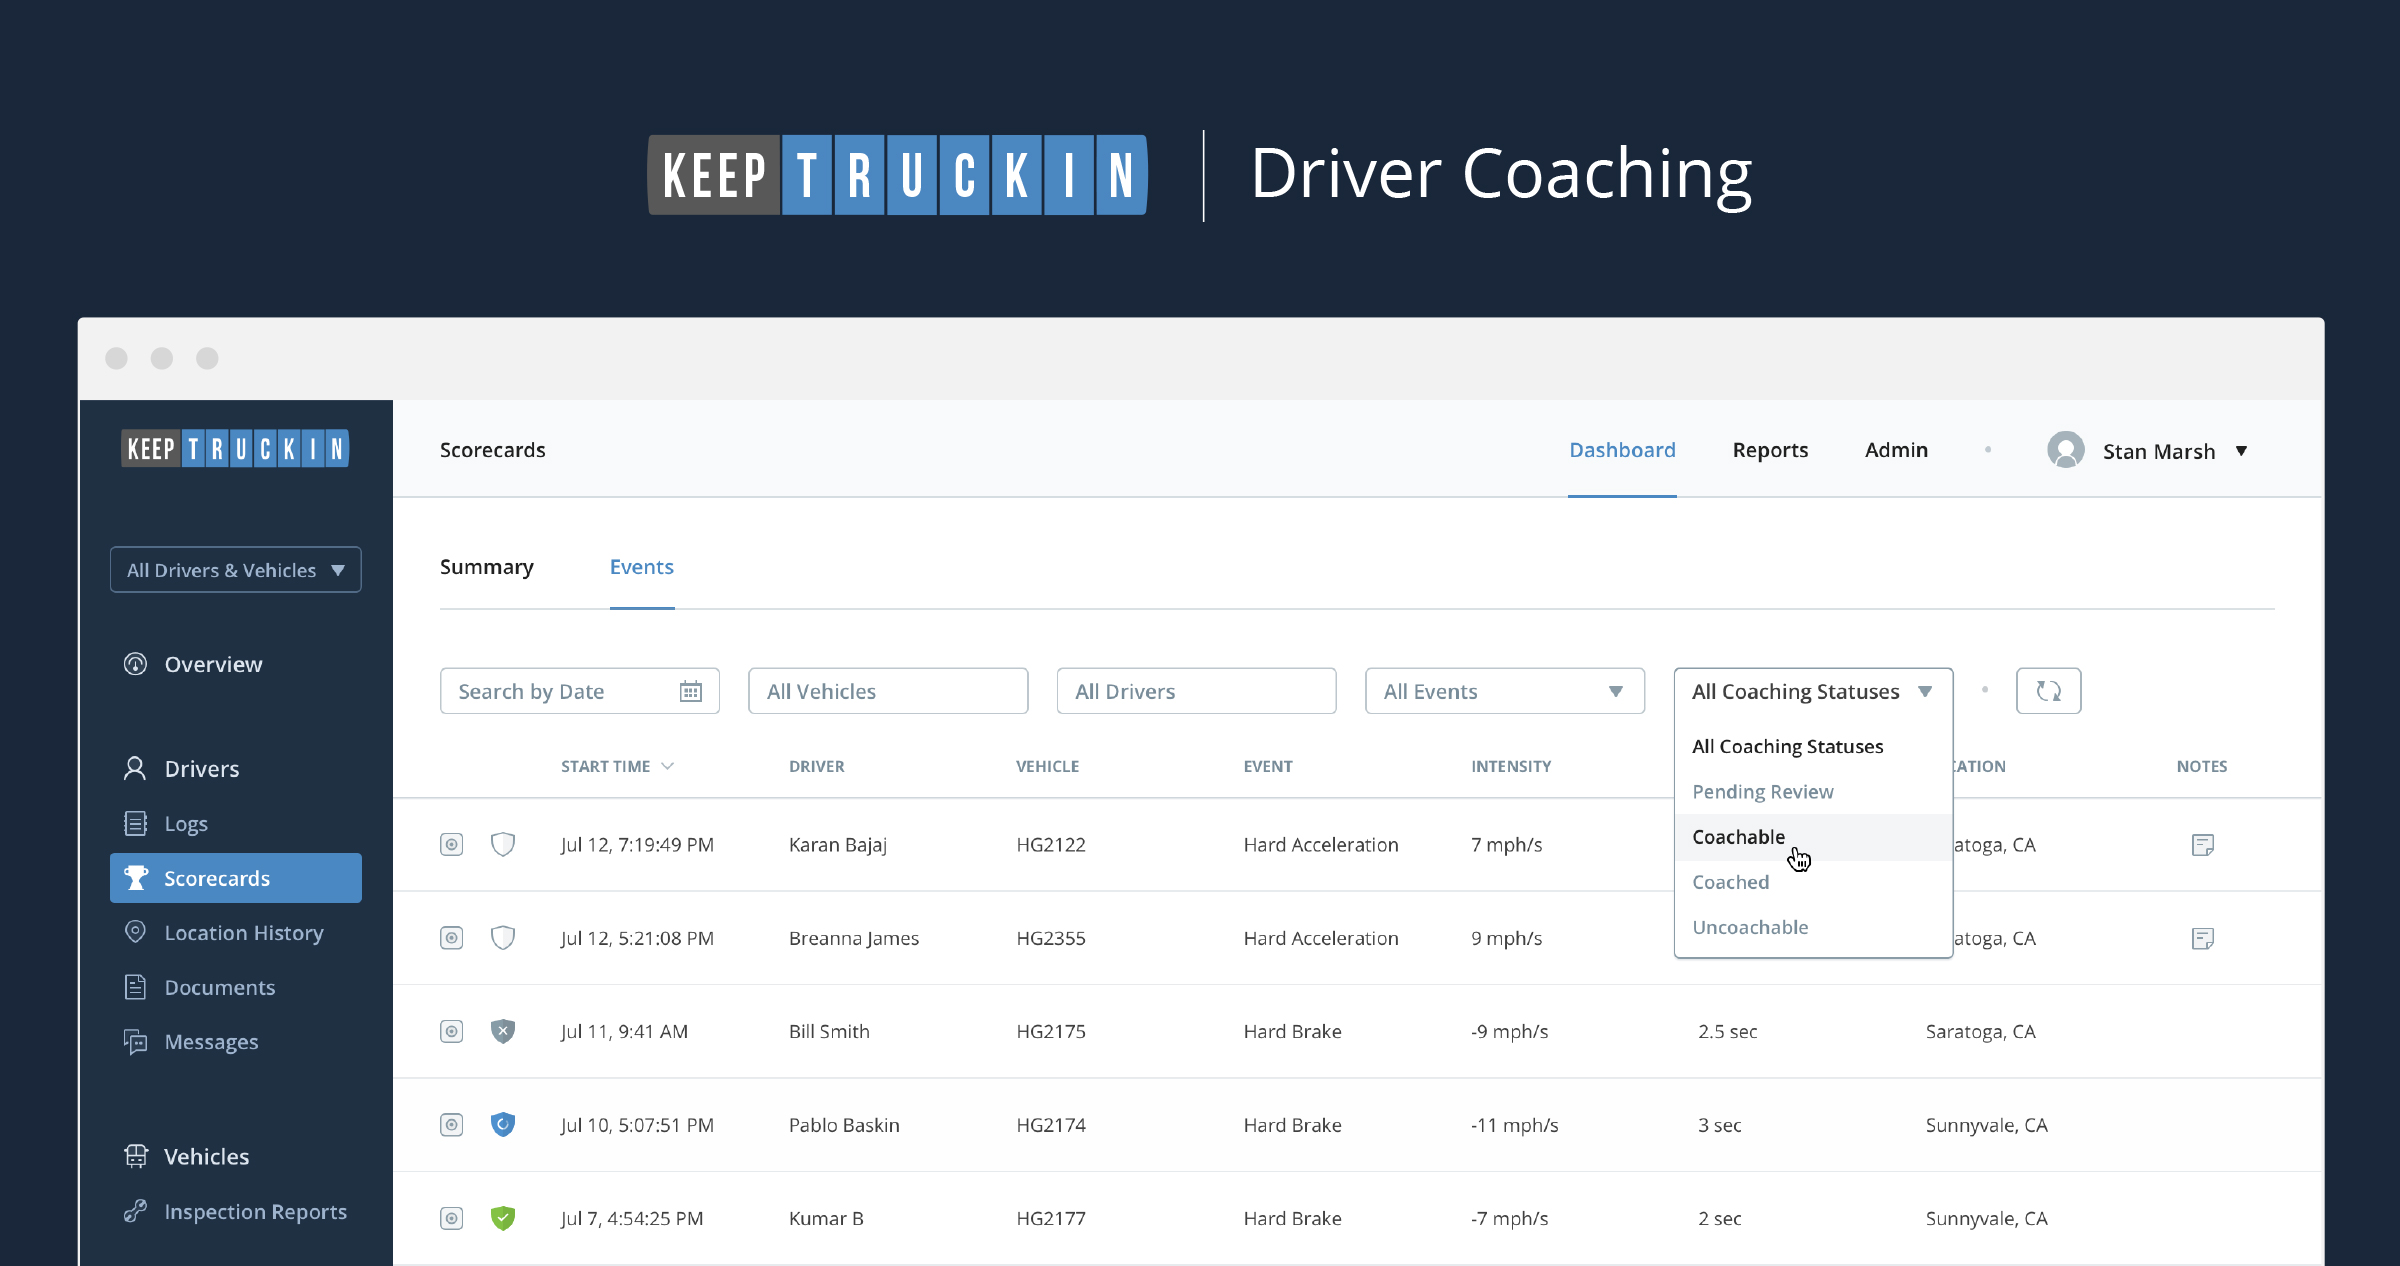 Introducing 'Driver Coaching': A new feature to help coach your drivers